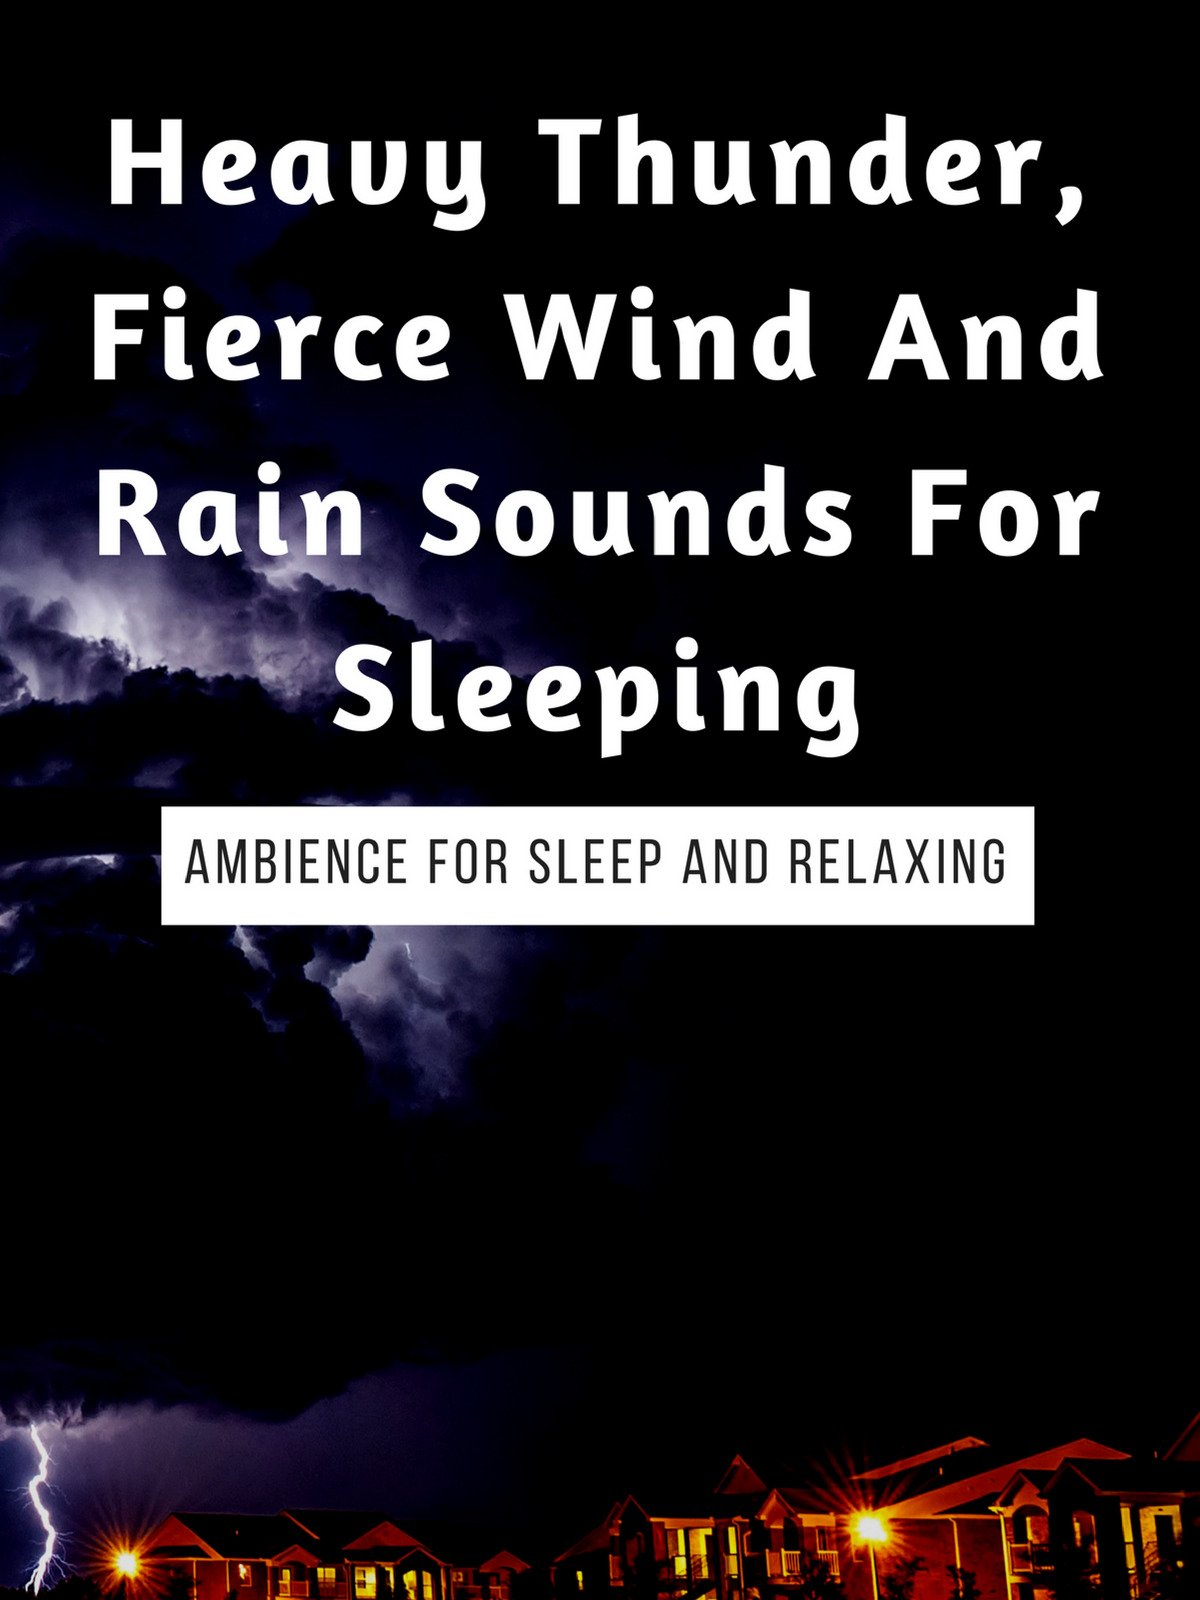 Heavy Thunder, Fierce Wind And Rain Sounds For Sleeping